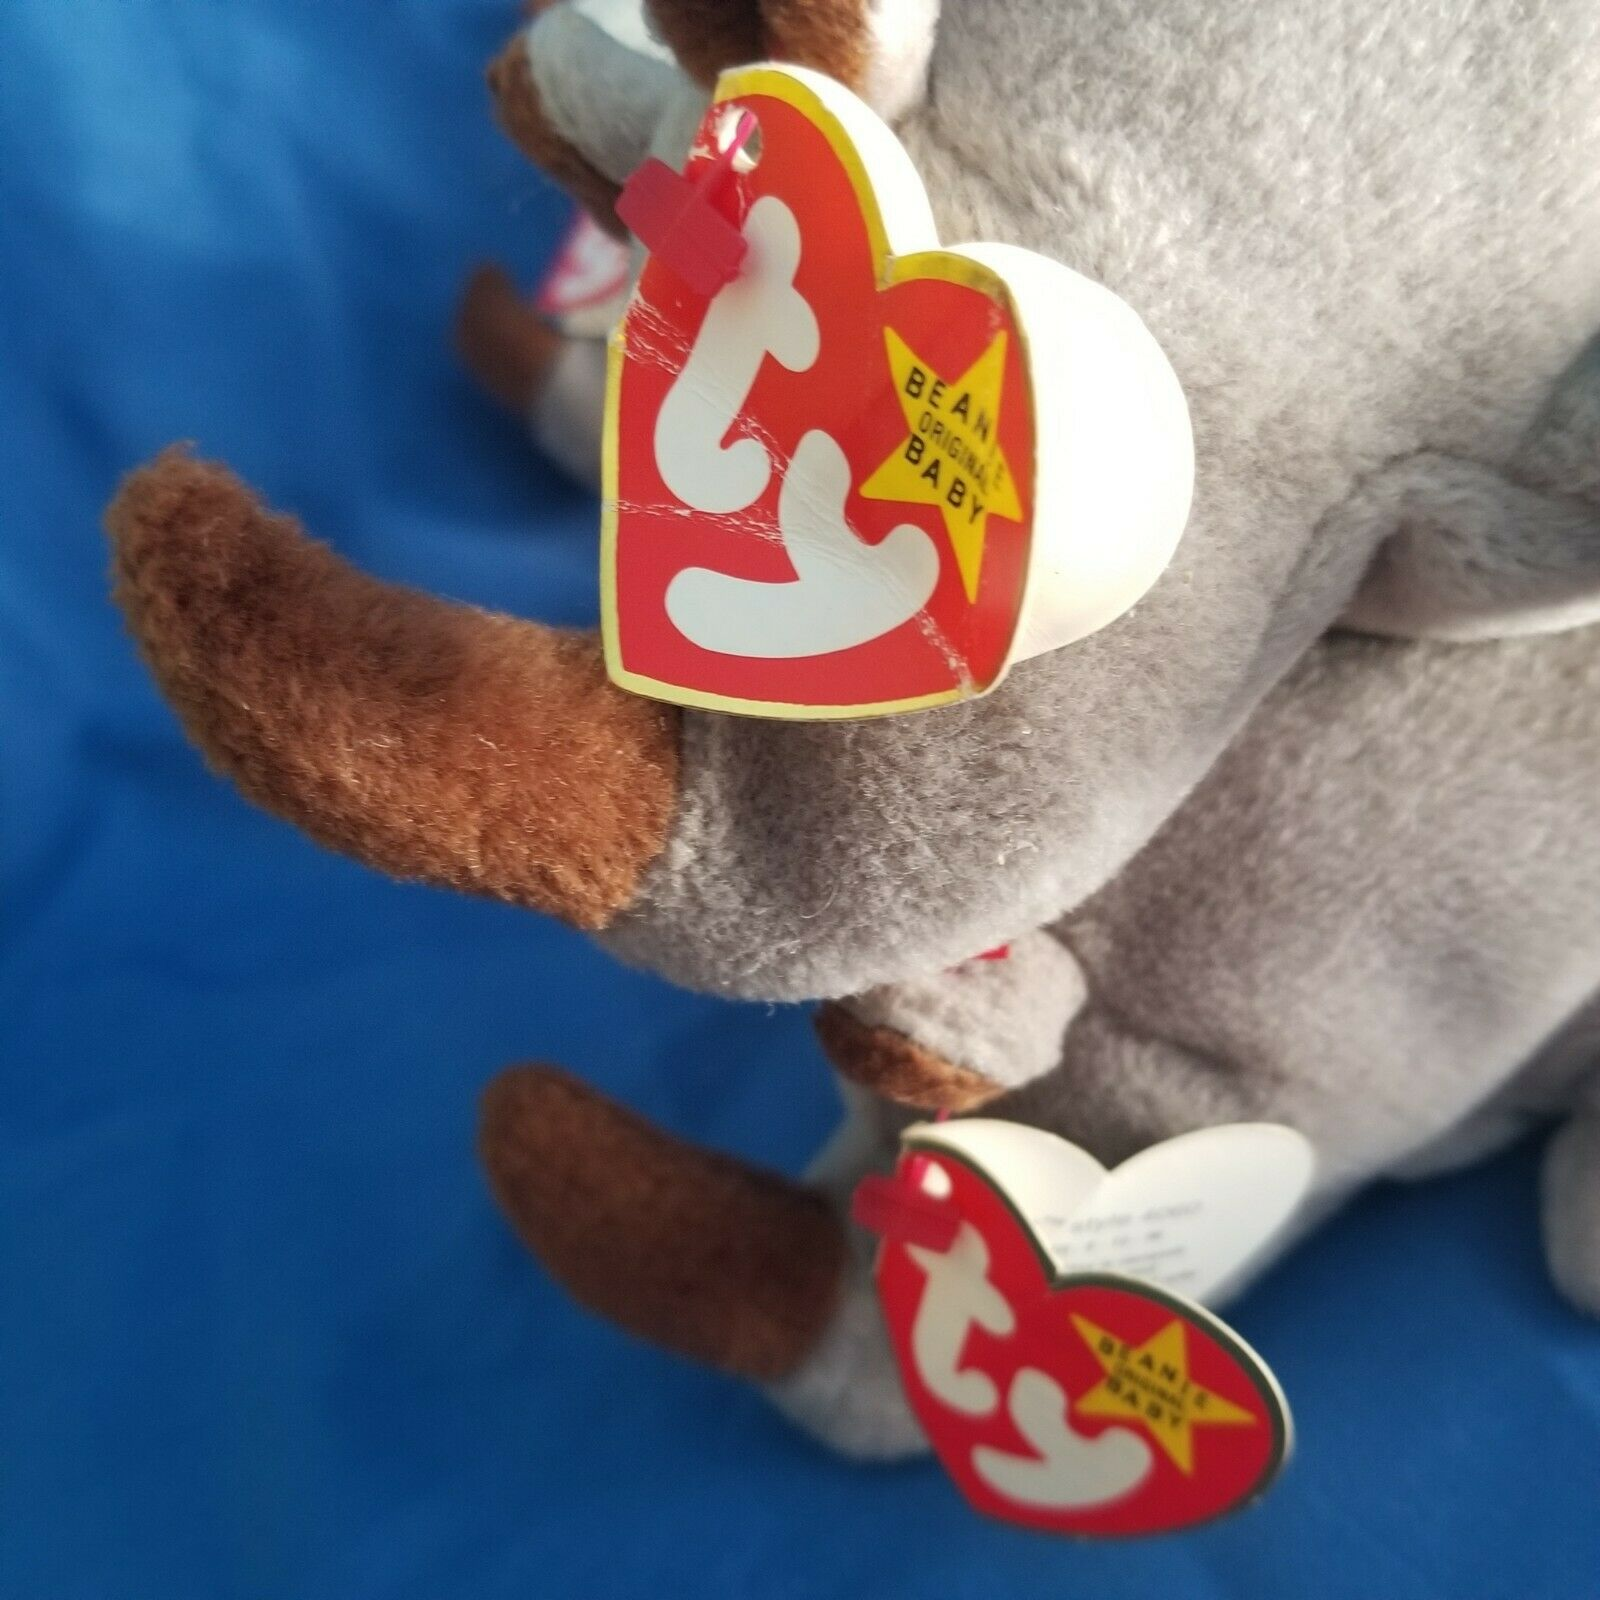 Lot Of 4 Ty Beanie Babies Spike Style 4060 4060 4060 With Errors 3dbe8f